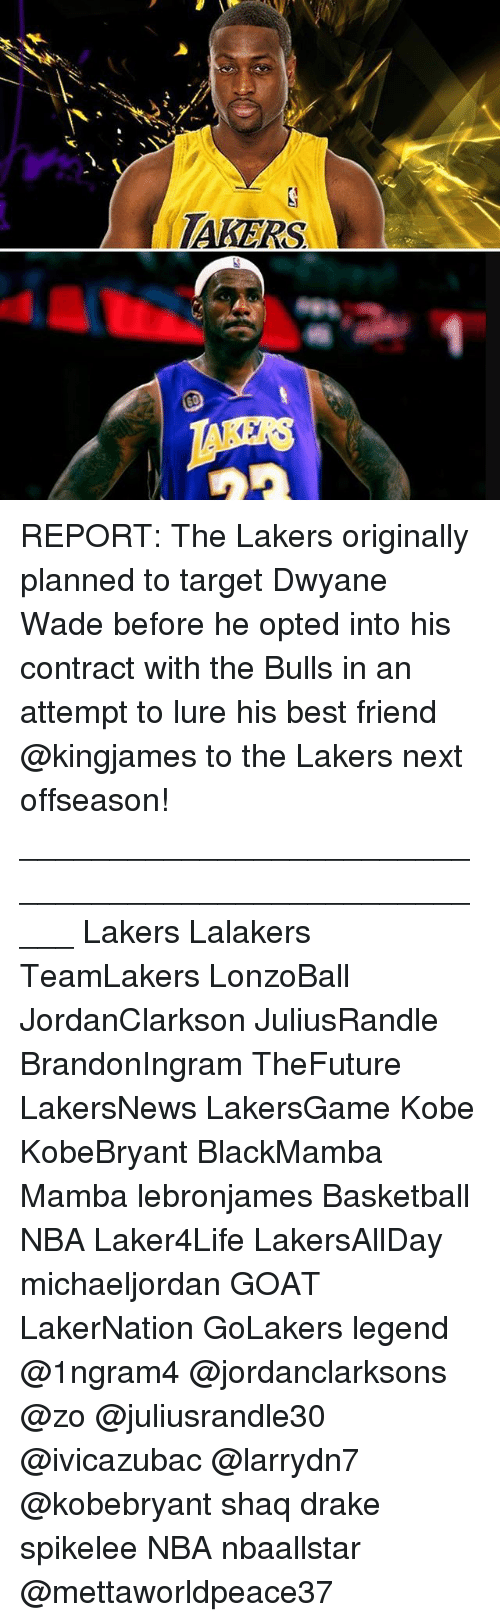 shaqs: TAKERS REPORT: The Lakers originally planned to target Dwyane Wade before he opted into his contract with the Bulls in an attempt to lure his best friend @kingjames to the Lakers next offseason! _____________________________________________________ Lakers Lalakers TeamLakers LonzoBall JordanClarkson JuliusRandle BrandonIngram TheFuture LakersNews LakersGame Kobe KobeBryant BlackMamba Mamba lebronjames Basketball NBA Laker4Life LakersAllDay michaeljordan GOAT LakerNation GoLakers legend @1ngram4 @jordanclarksons @zo @juliusrandle30 @ivicazubac @larrydn7 @kobebryant shaq drake spikelee NBA nbaallstar @mettaworldpeace37